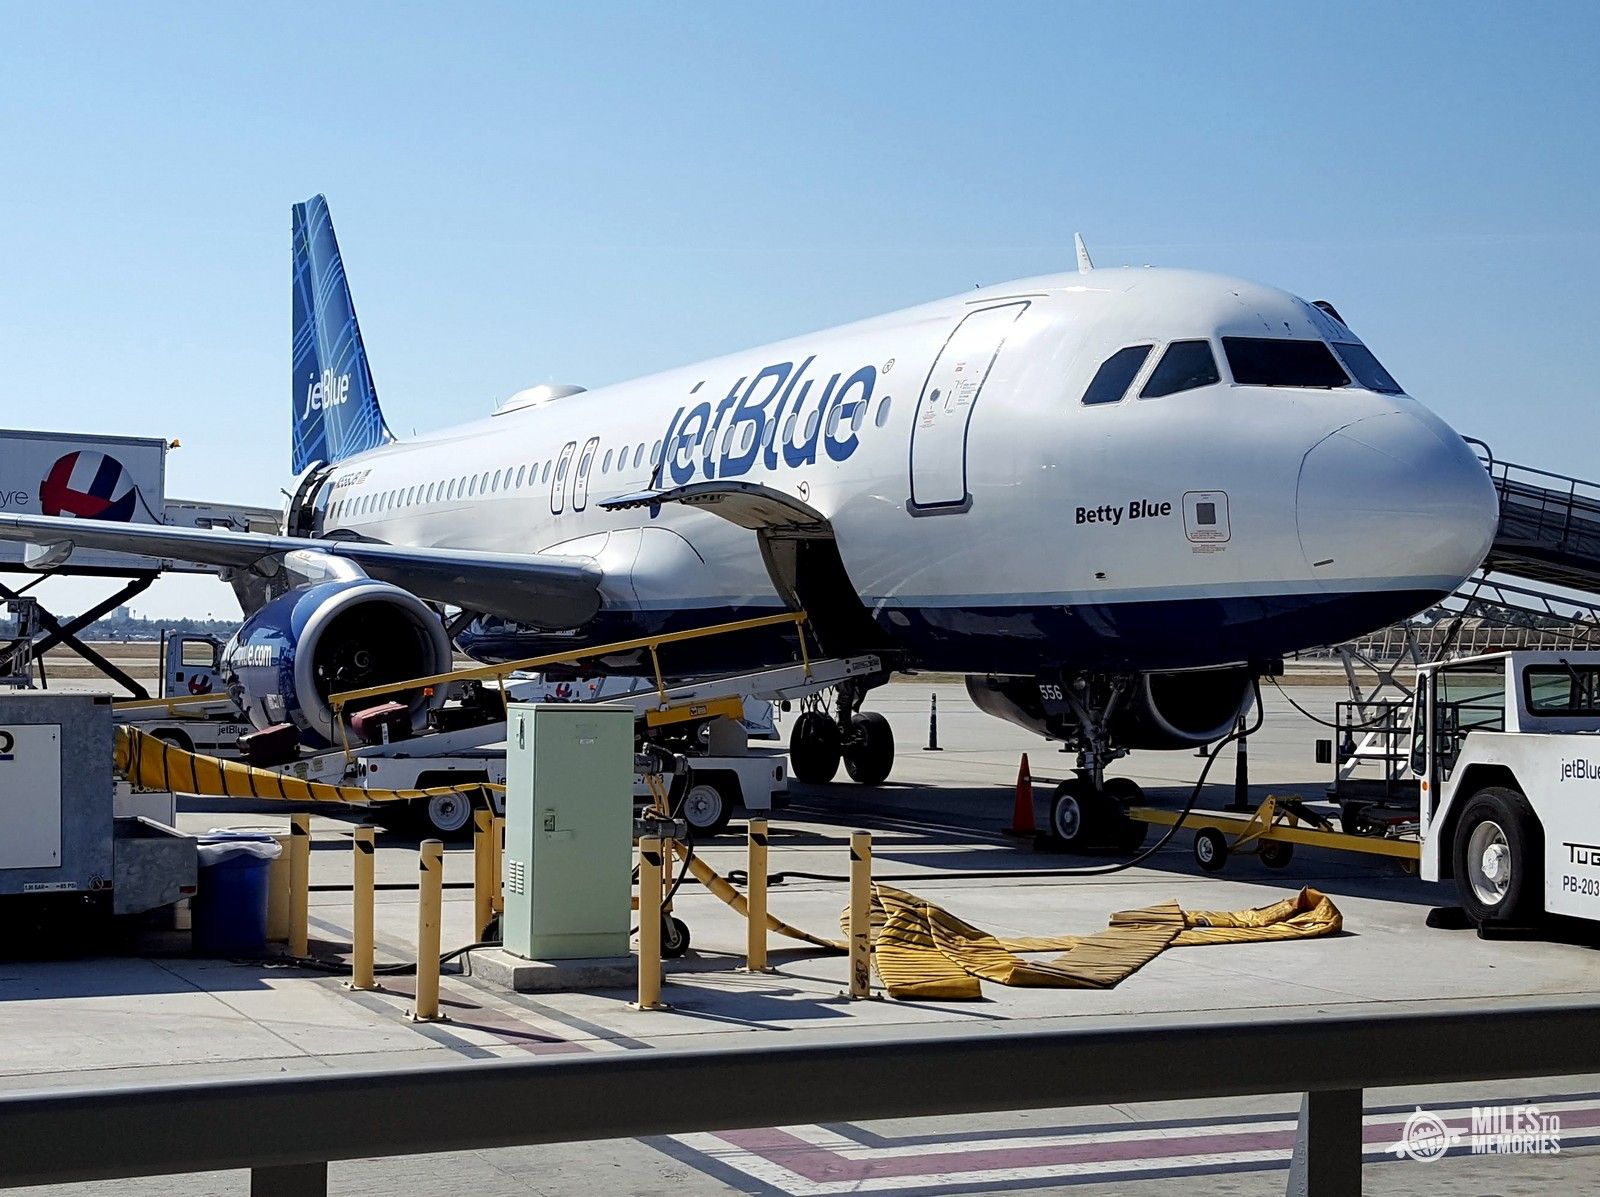 Transfer Amex Membership Rewards to JetBlue